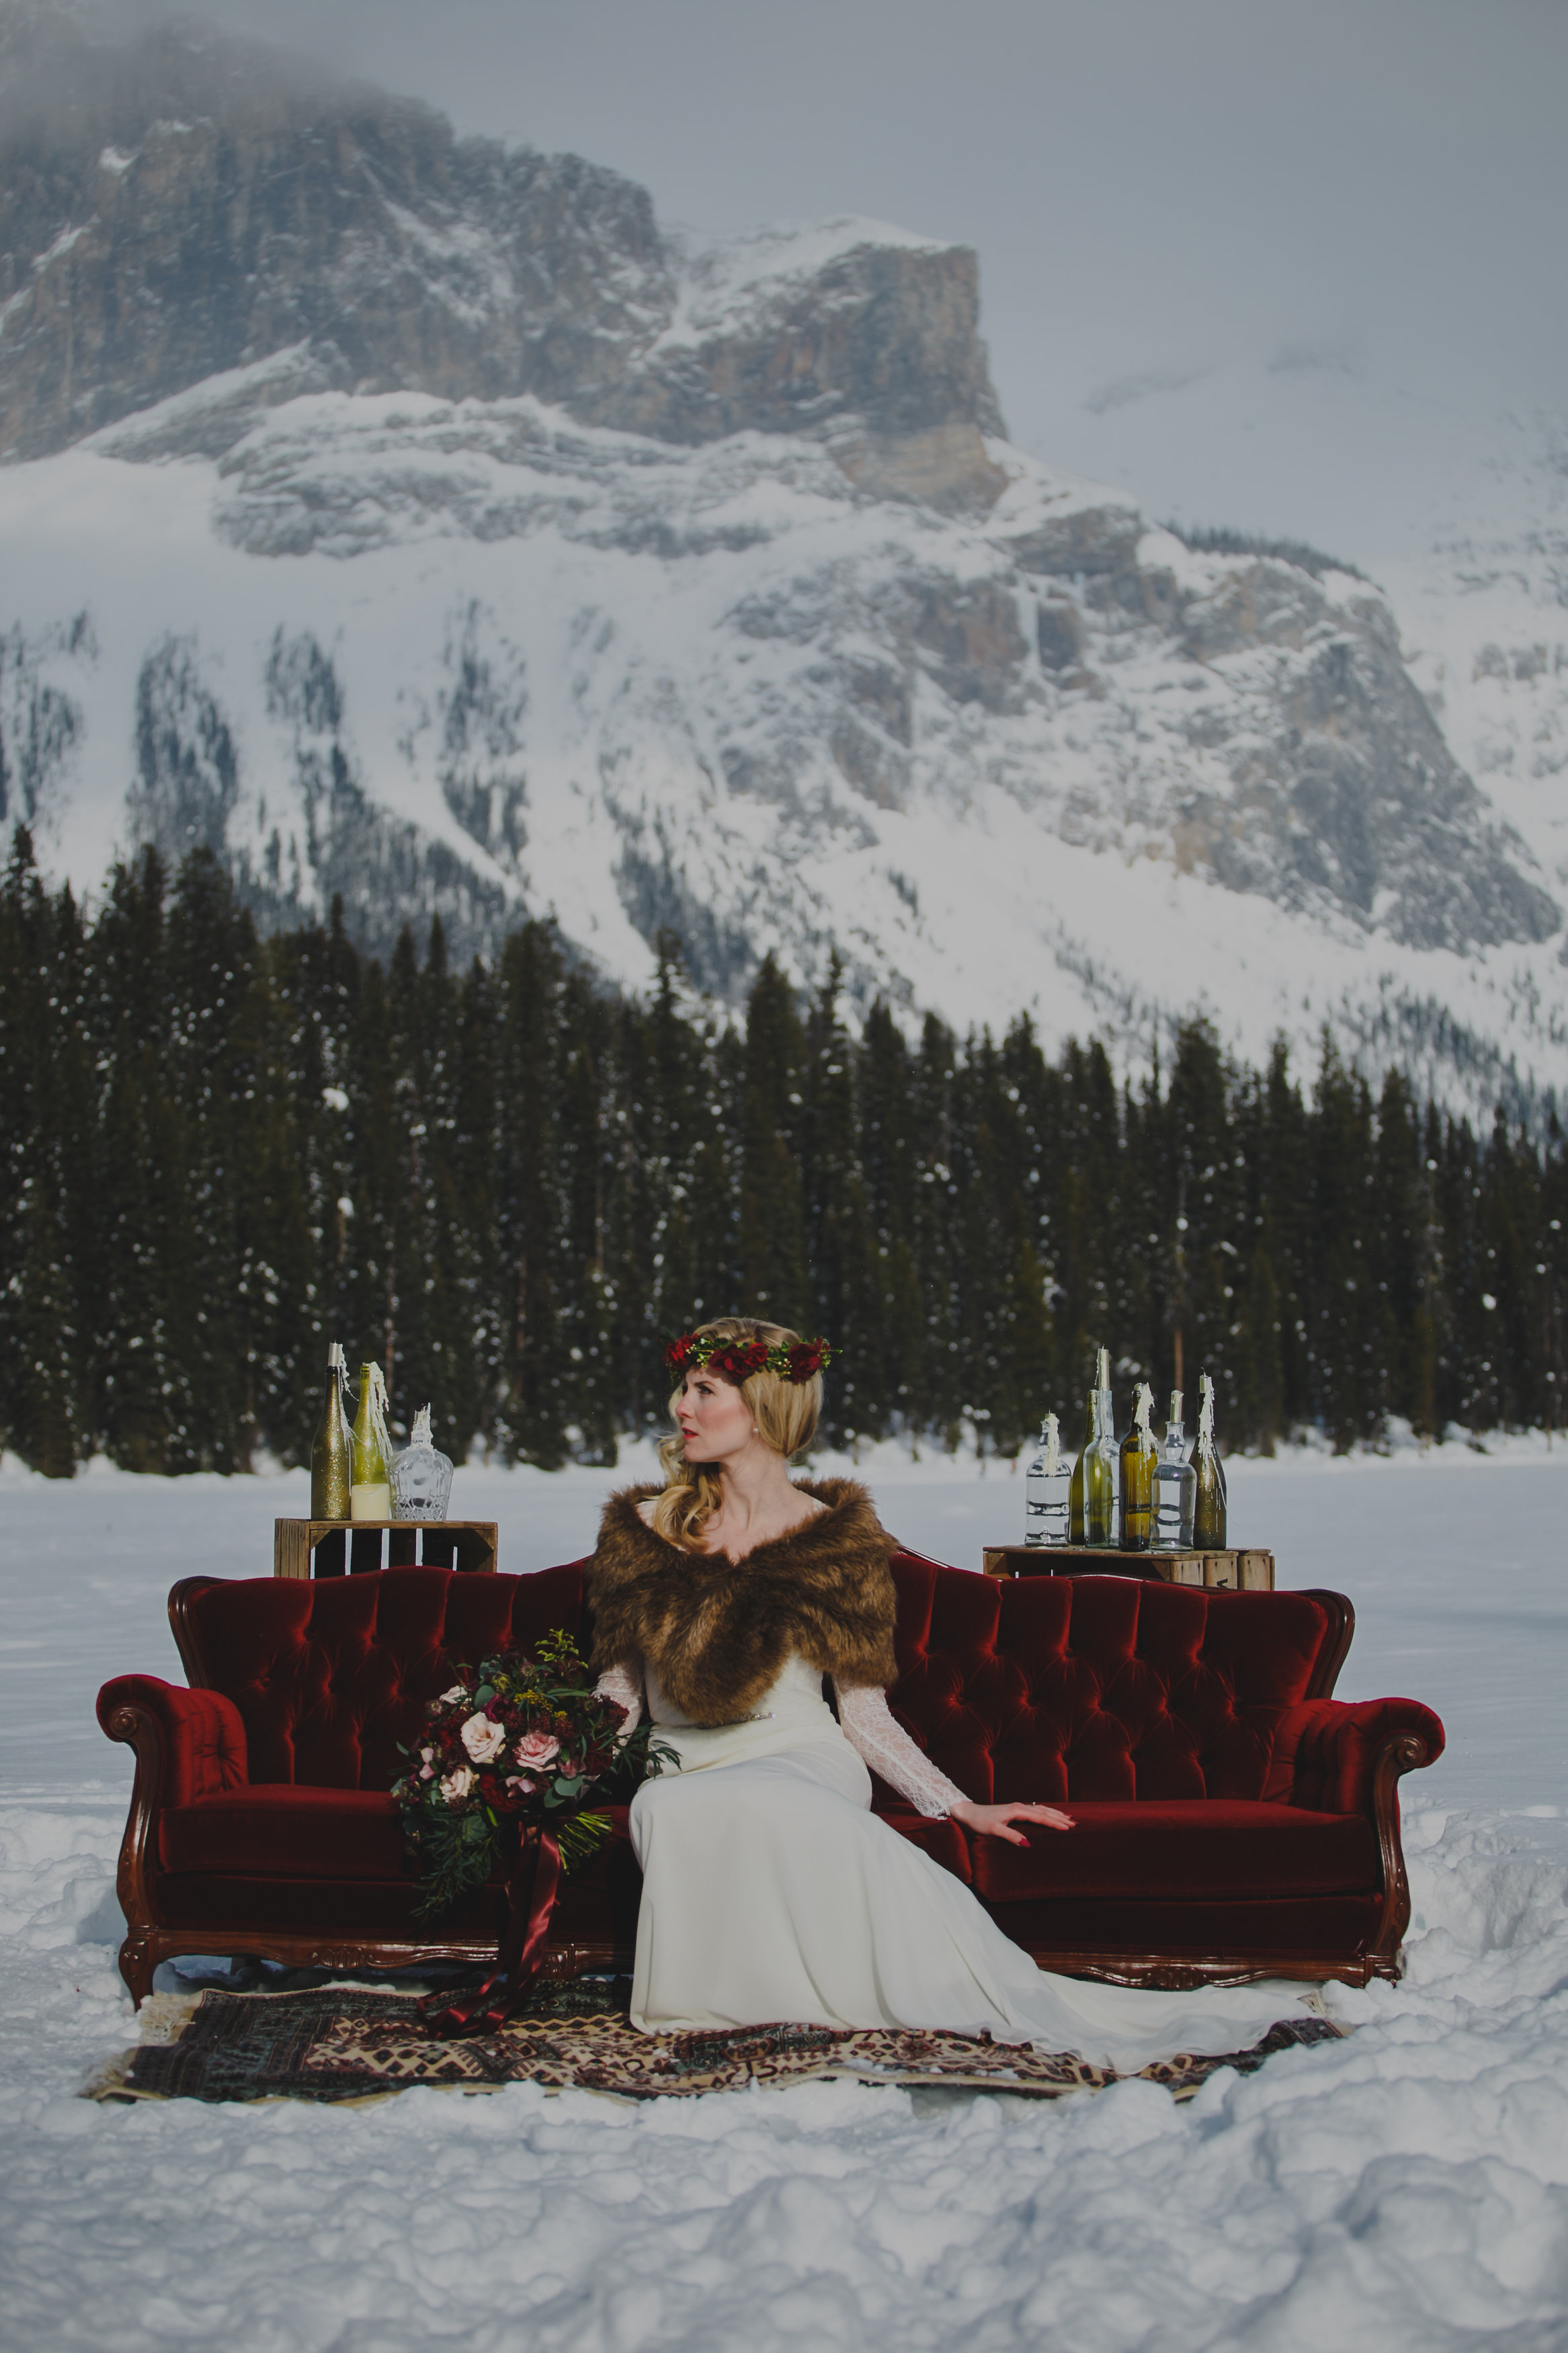 F-EmeraldLake-RockyMountainWedding-Lolo&Noa-4.jpg